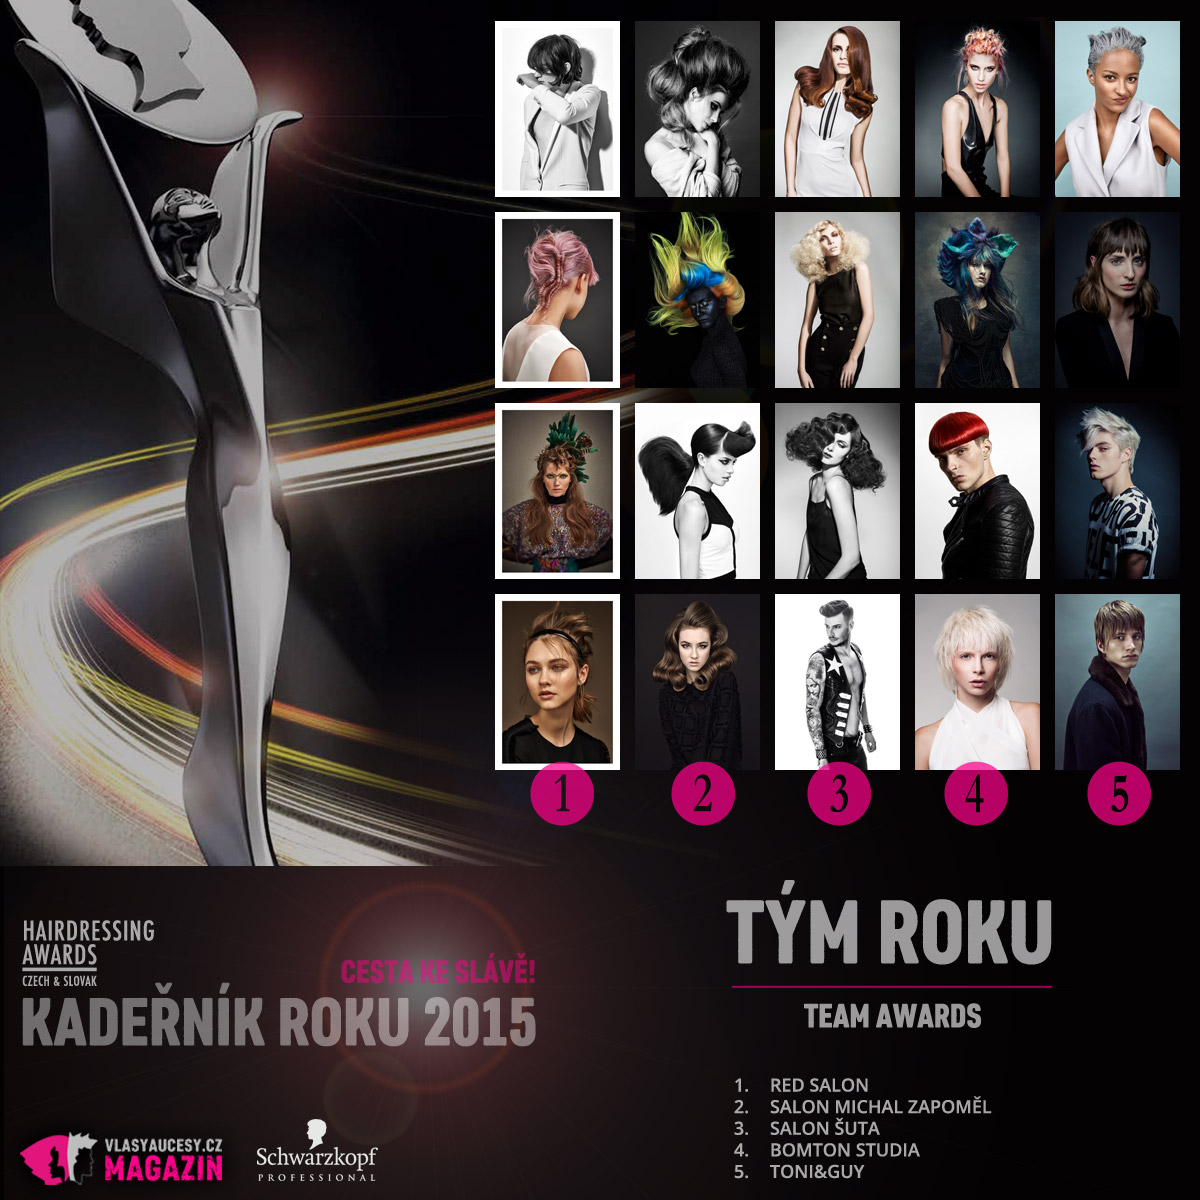 Czech&Slovak Hairdressing Awards 2015 – kategorie Tým roku / Team Award (RED Salon, Salon Michal Zapoměl, Salon ŠUTA, Bomton Studia, Toni&Guy).